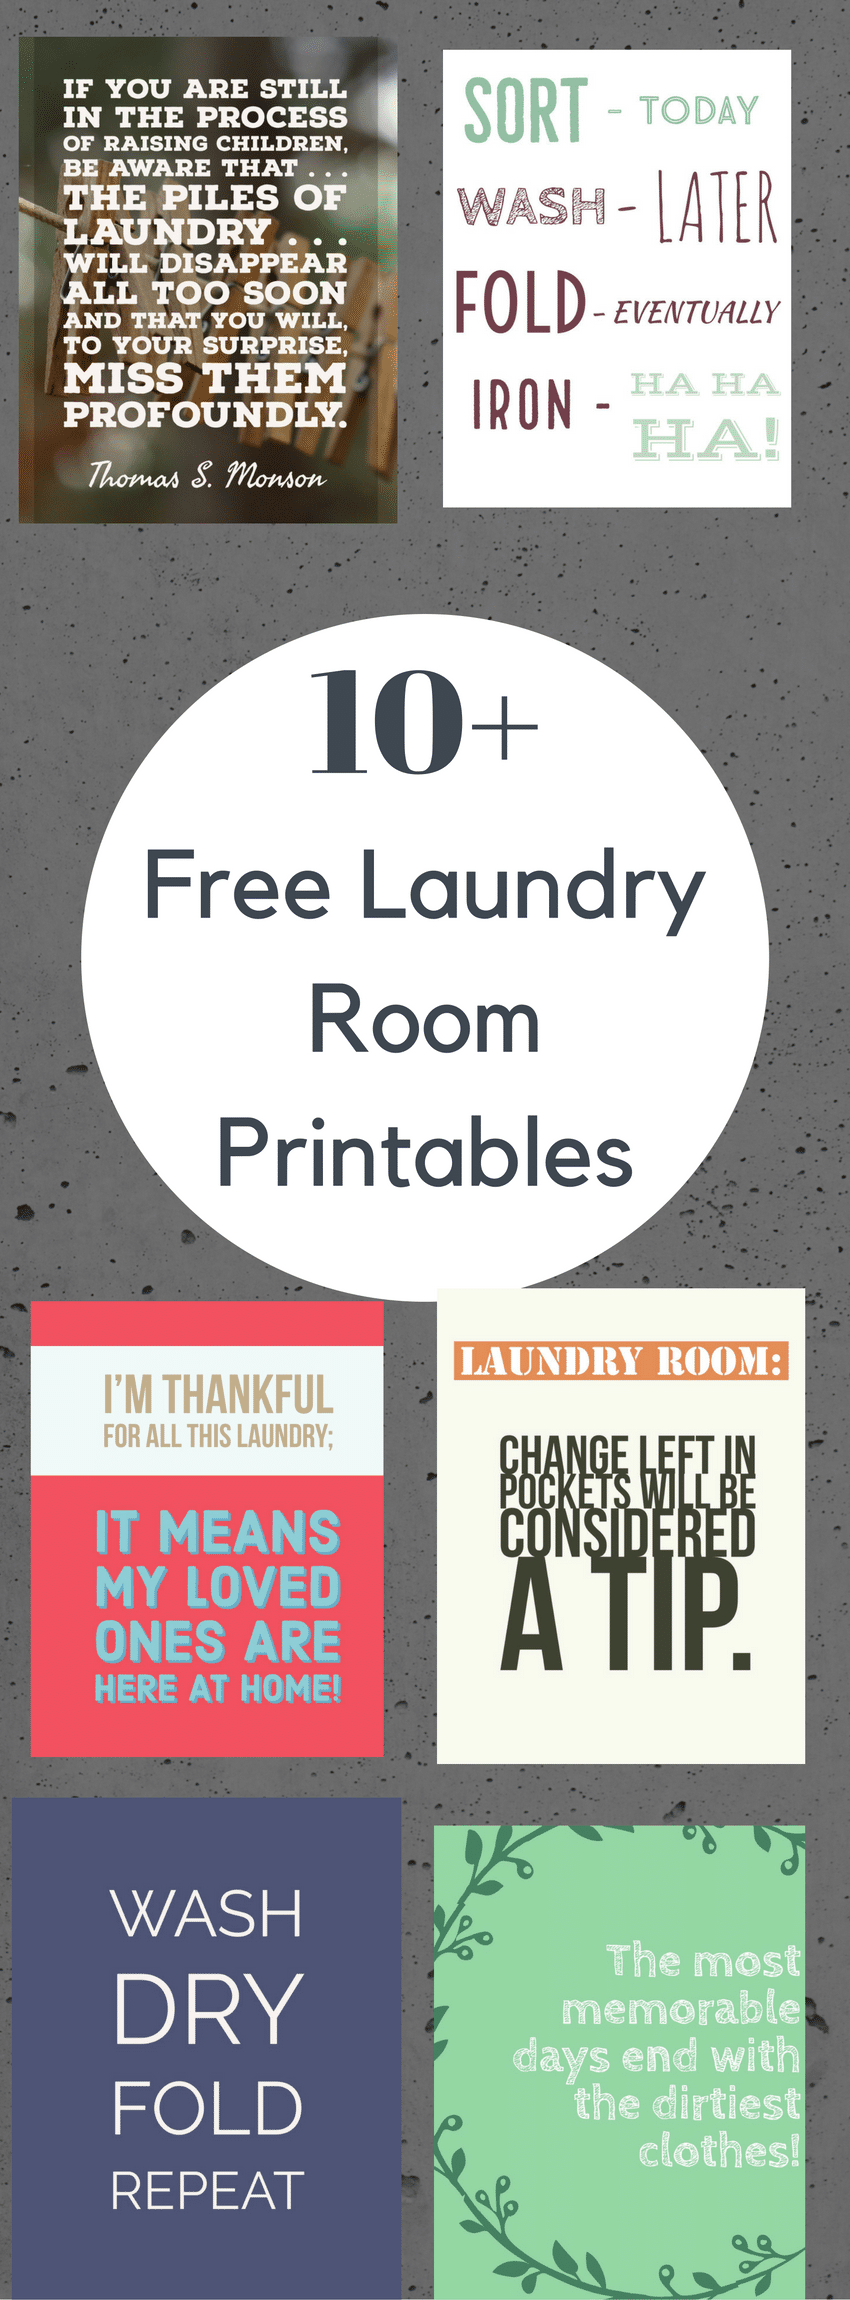 FREE Printable Laundry Signs / Laundry Room Signs / Laundry Room Decor / Laundry Room Printables / Printable Laundry Room Sign via @clarkscondensed